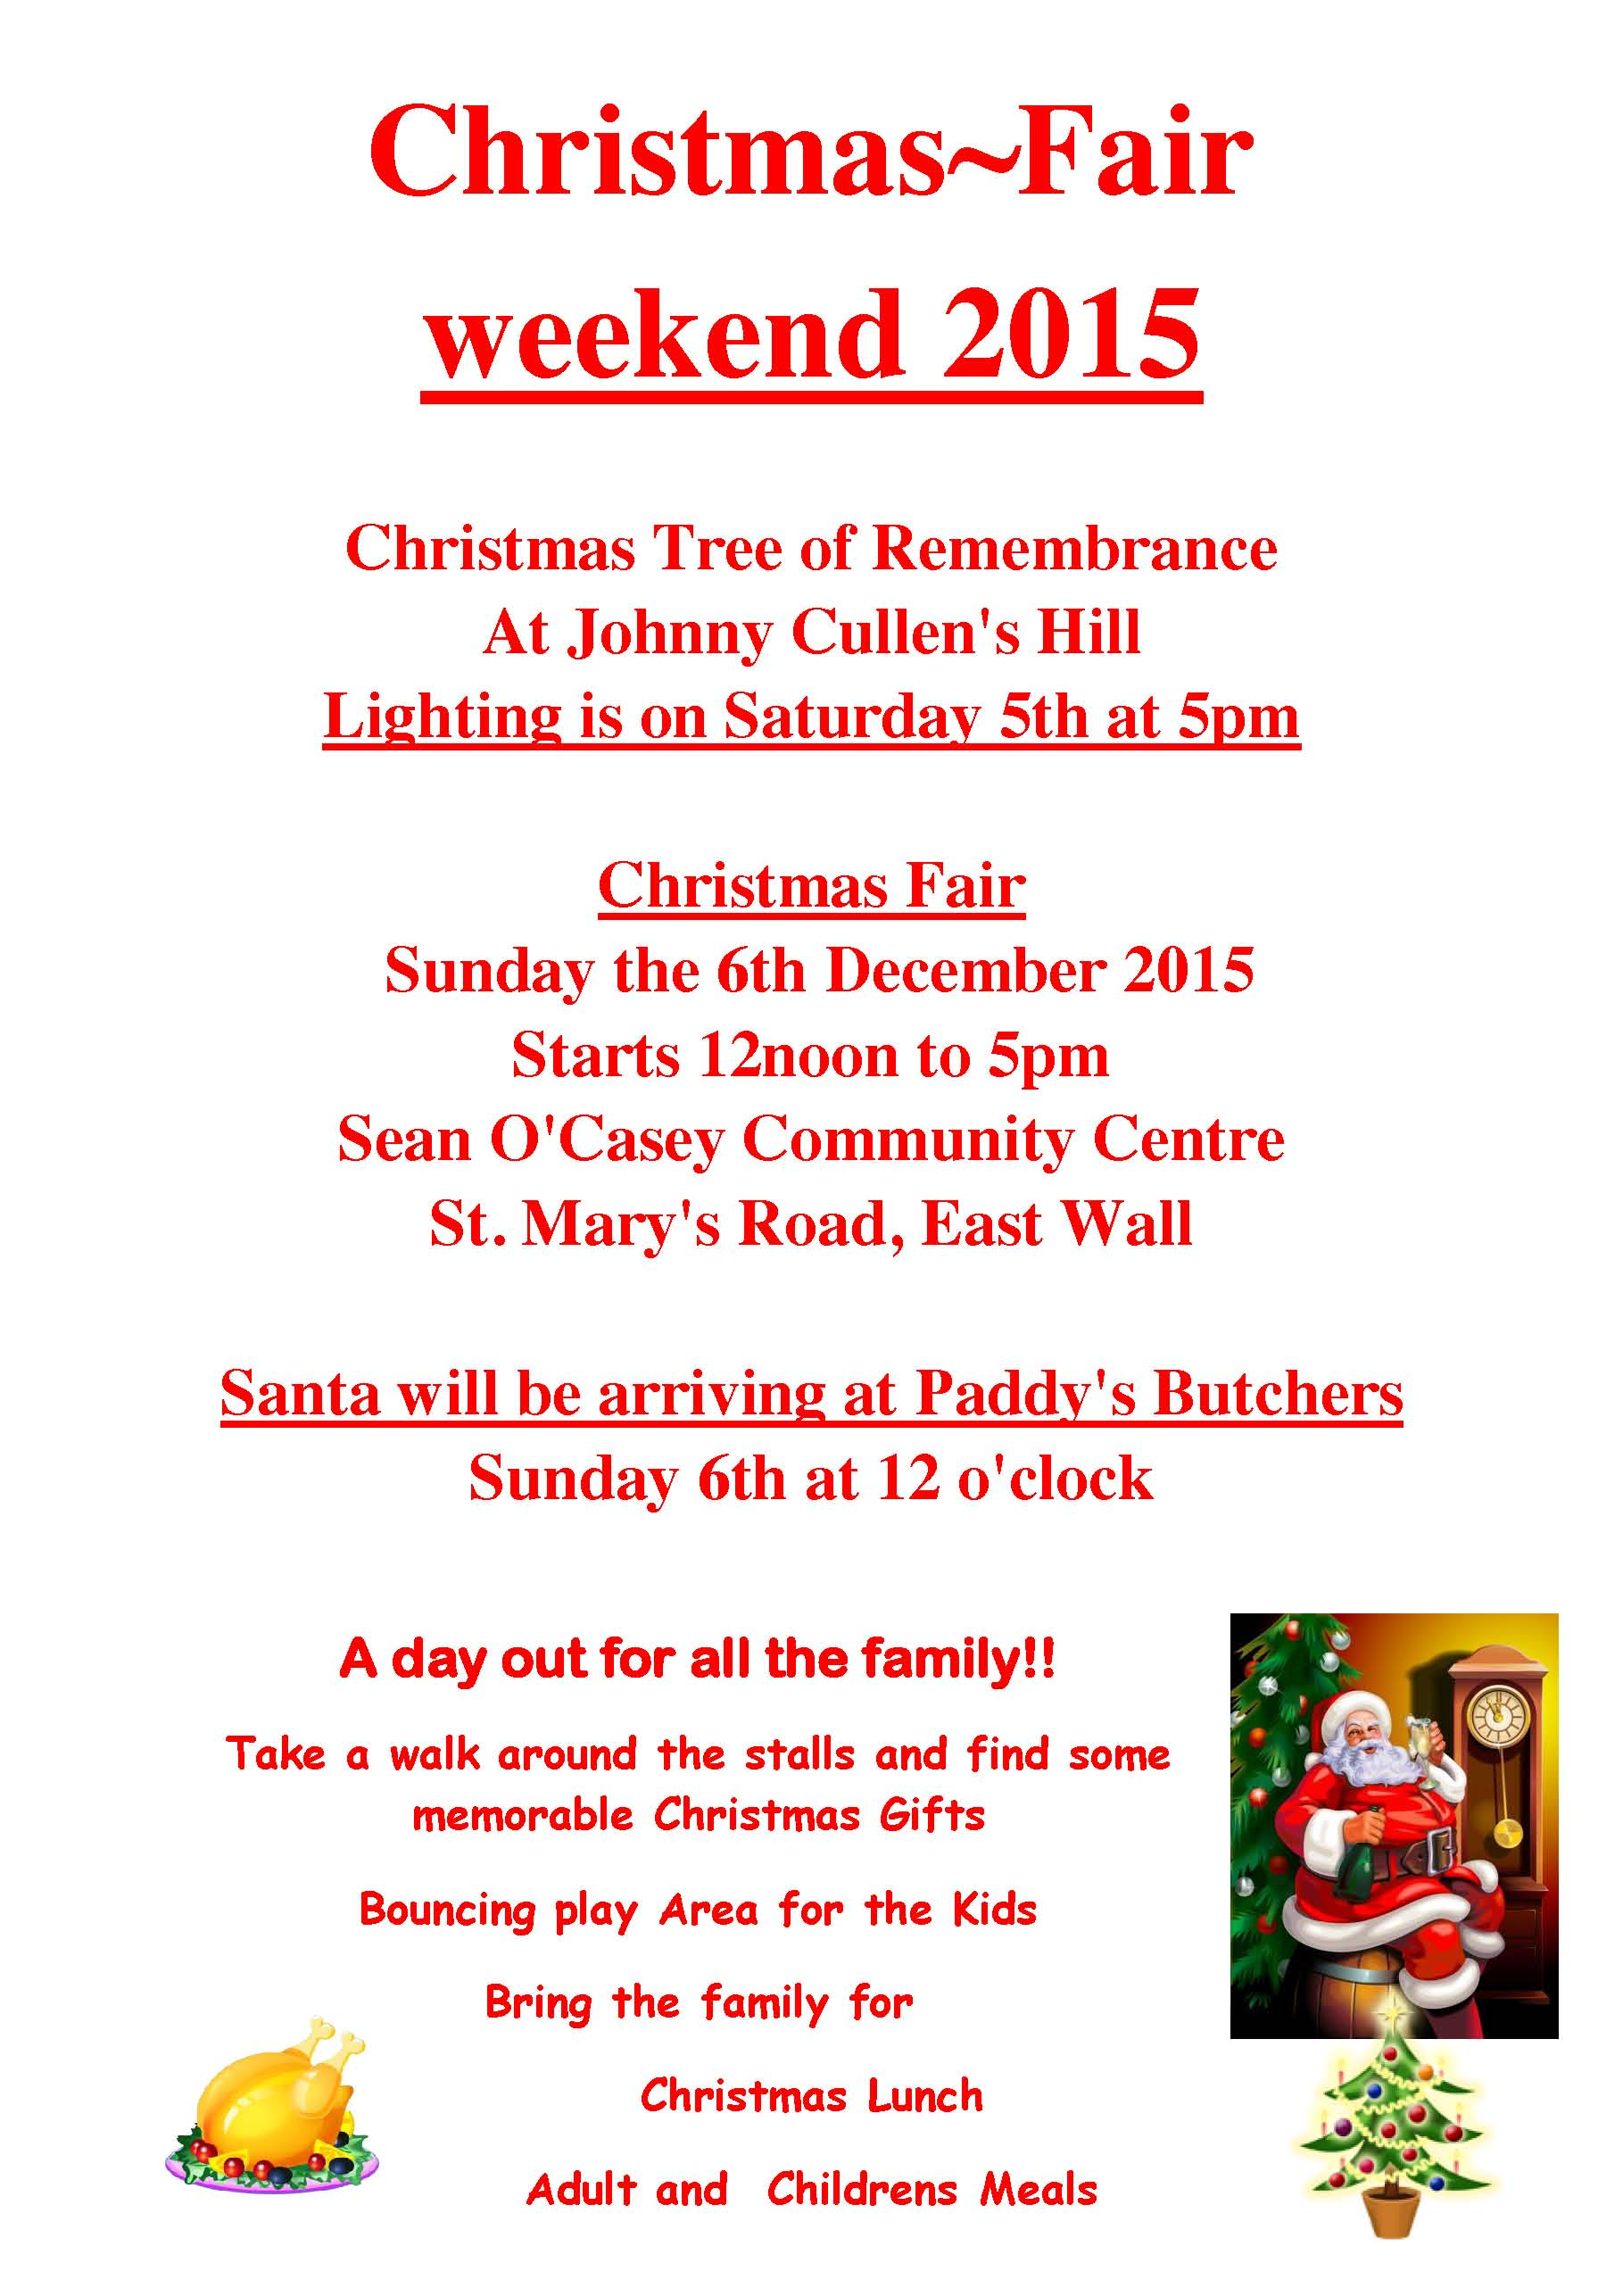 Christmas Fair 2015 weekend (1)_Page_1